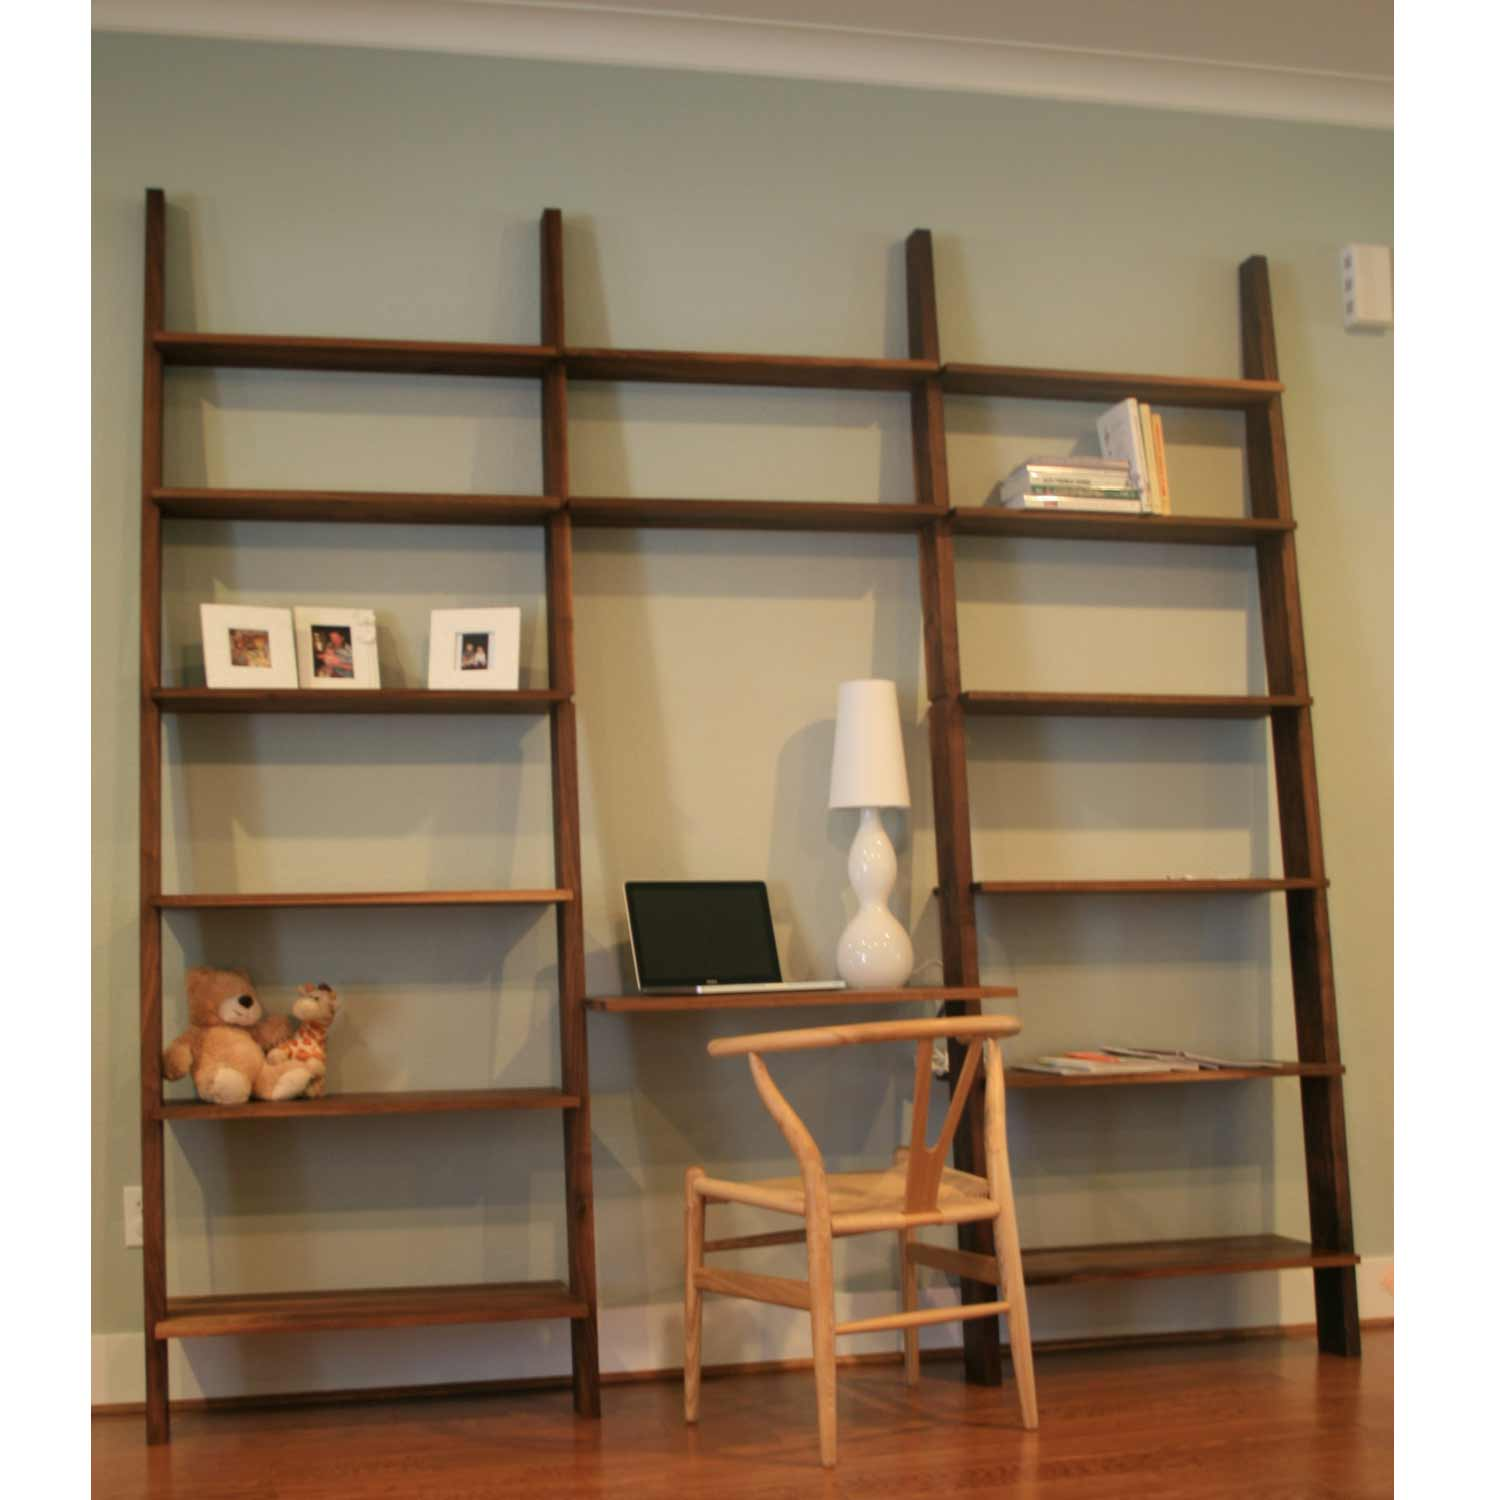 Leaning Wall Shelf Plans